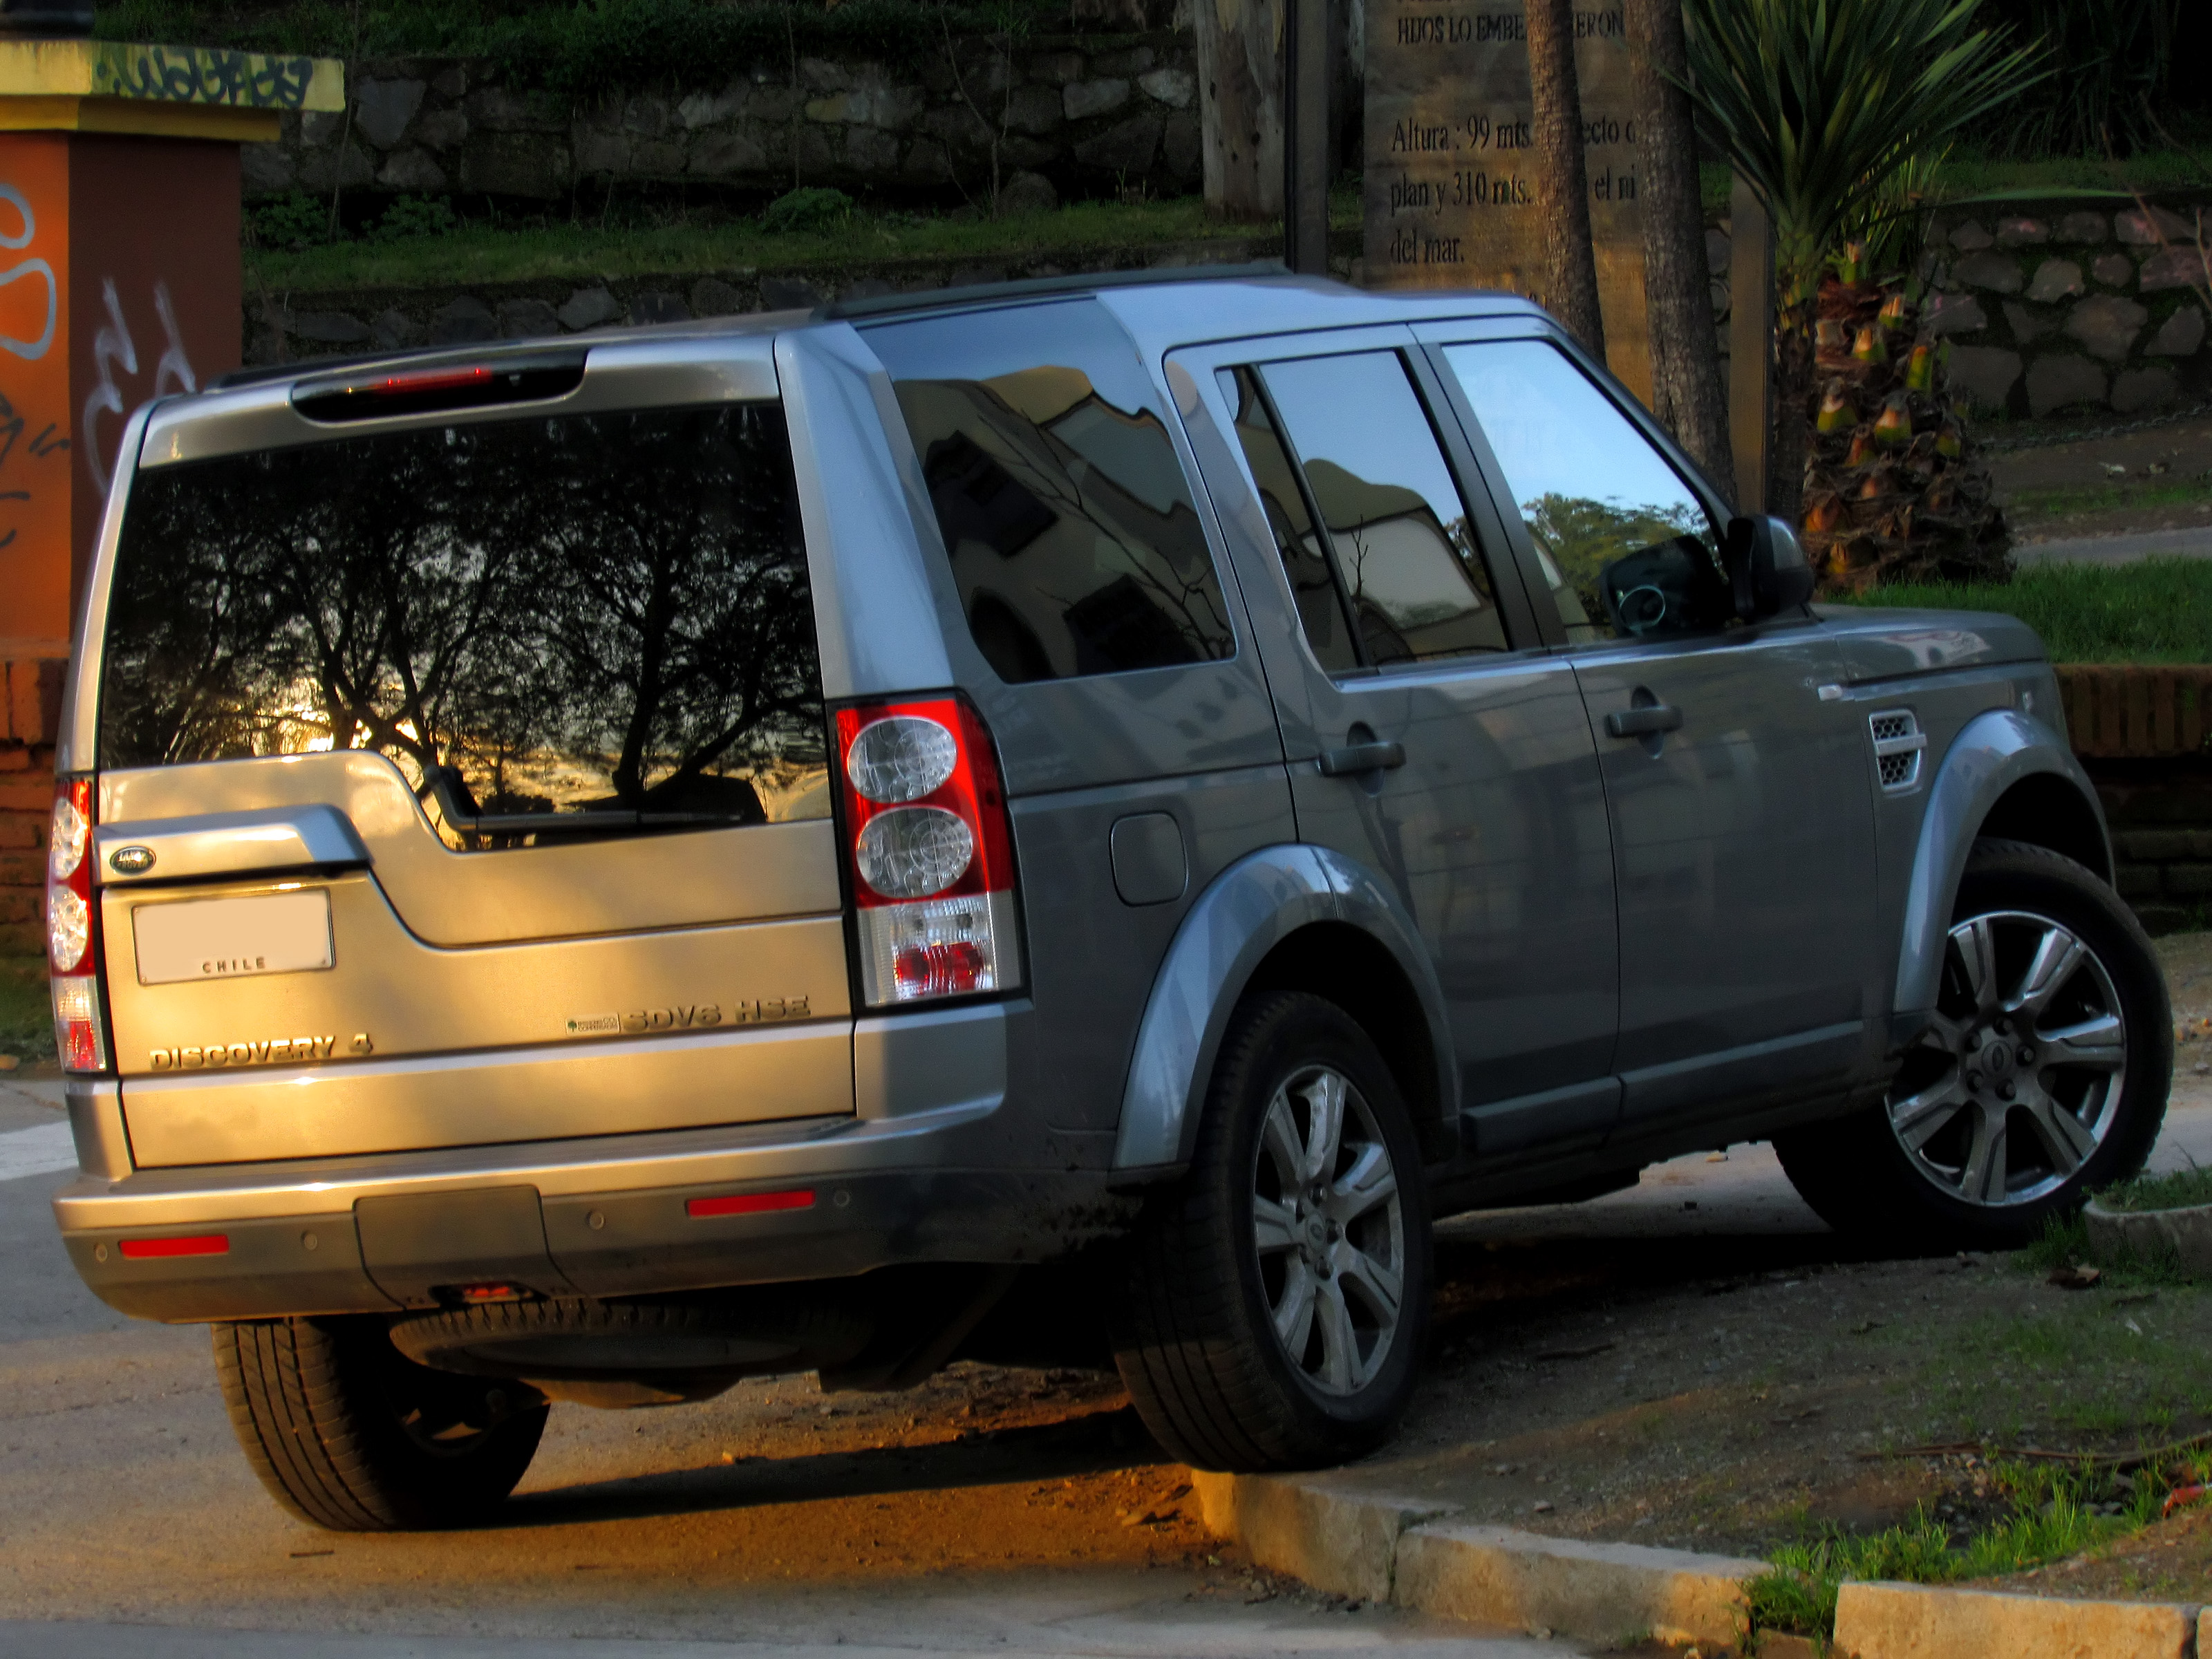 https://upload.wikimedia.org/wikipedia/commons/c/c4/Land_Rover_Discovery_4_SDV6_HSE_2014_%2815034159781%29.jpg